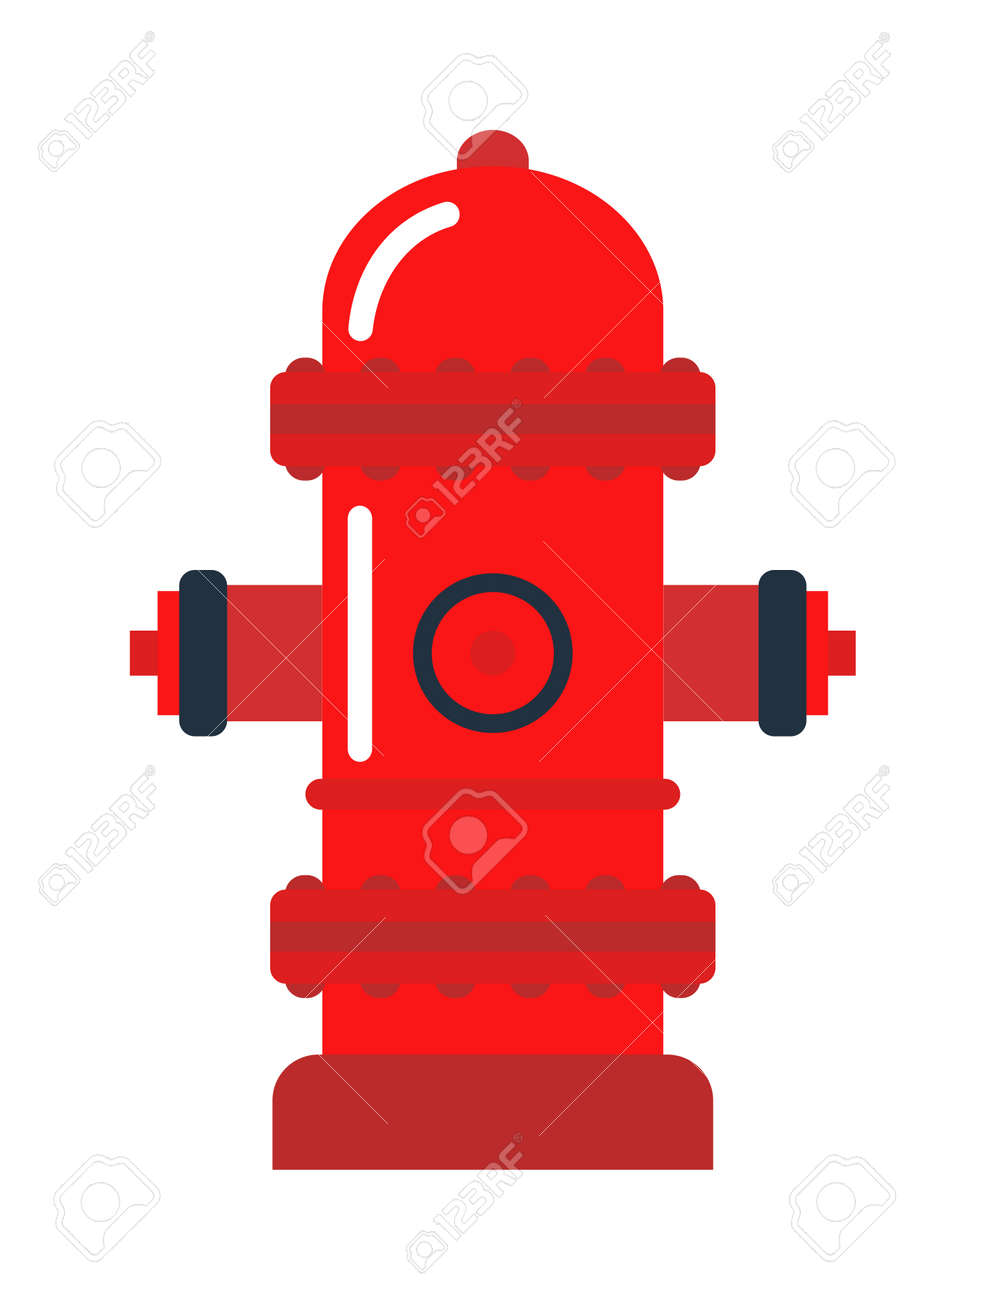 Vector illustration of fire hydrant safety fire hydrant emergency vector illustration of fire hydrant safety fire hydrant emergency department fire hydrant and protection buycottarizona Images